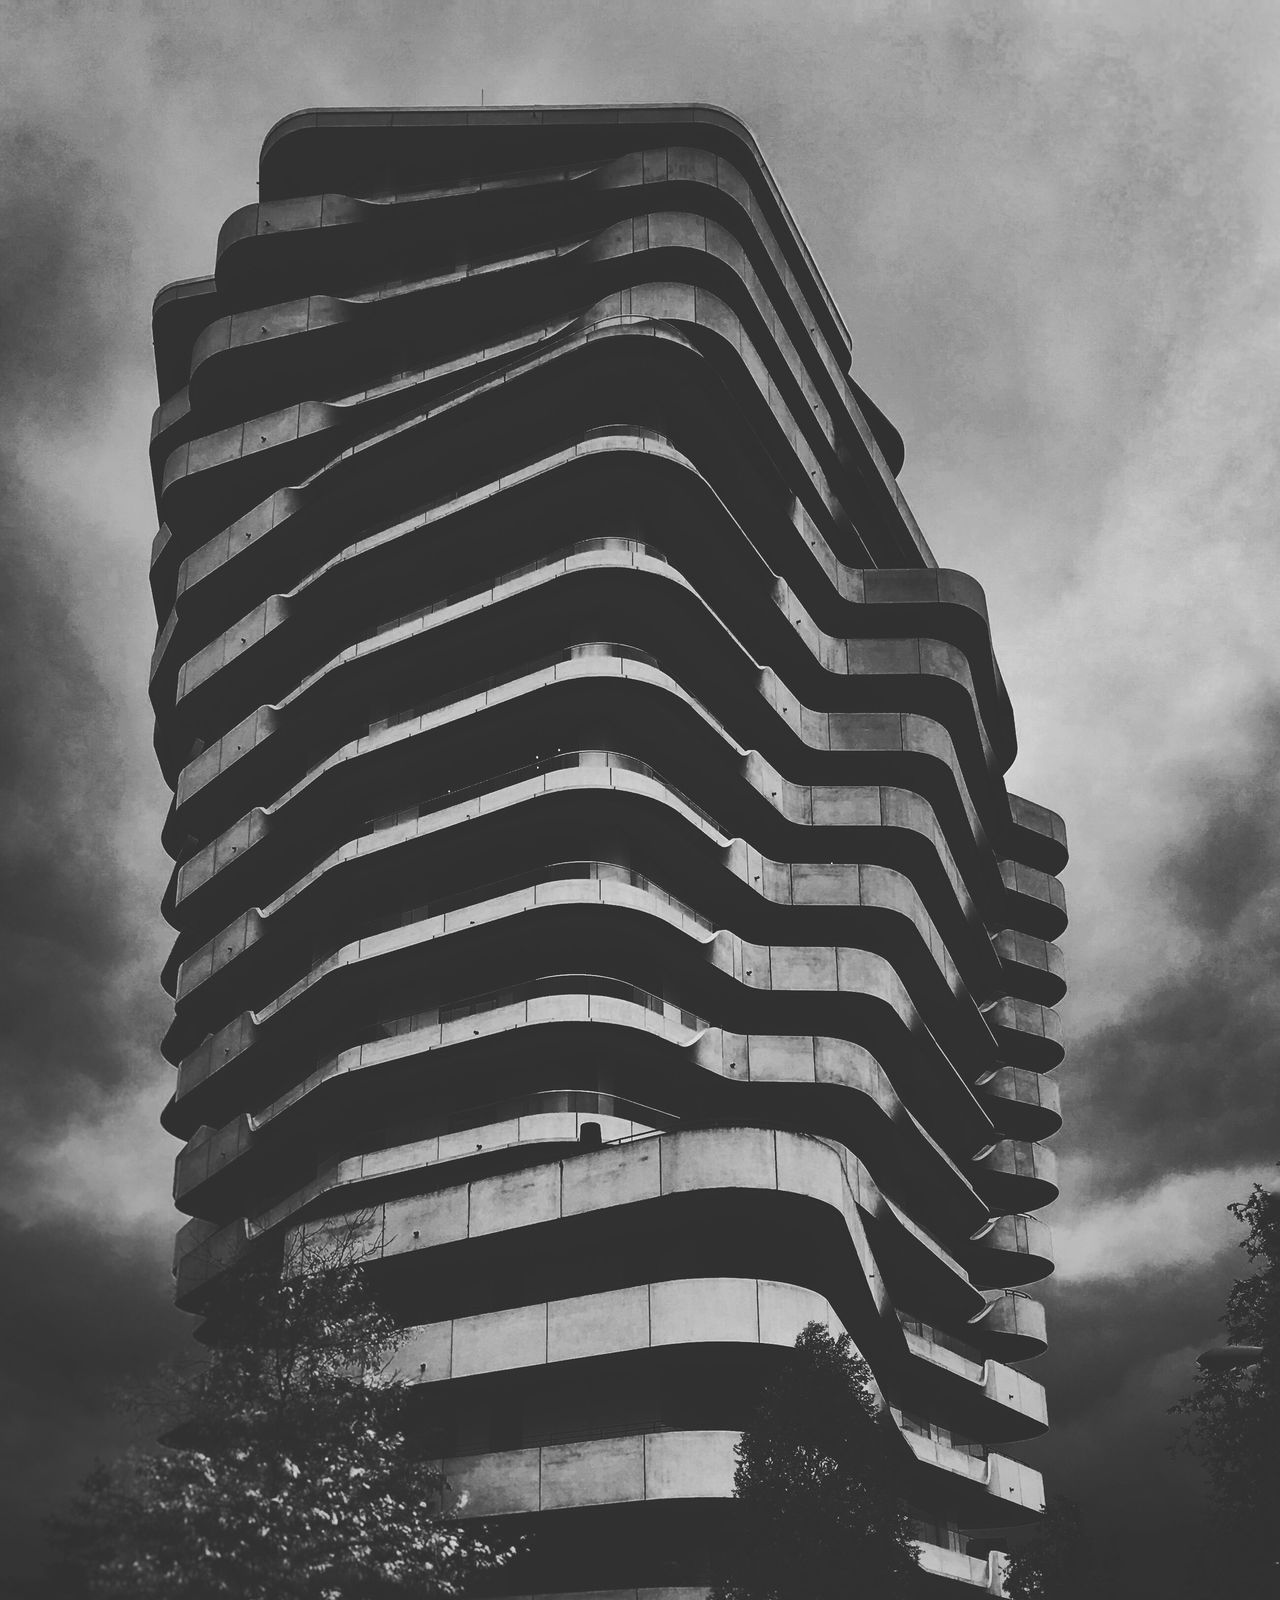 Marco Poli Tower, Hamburg, Germany. Low Angle View Architecture Building Exterior Built Structure Sky Dusk Tall - High Modern Cloud Building Story Office Building Cloud - Sky Repetition Outdoors Tall Treetop Place Of Work Skyscraper Contrasts No People The Architect - 2017 EyeEm Awards